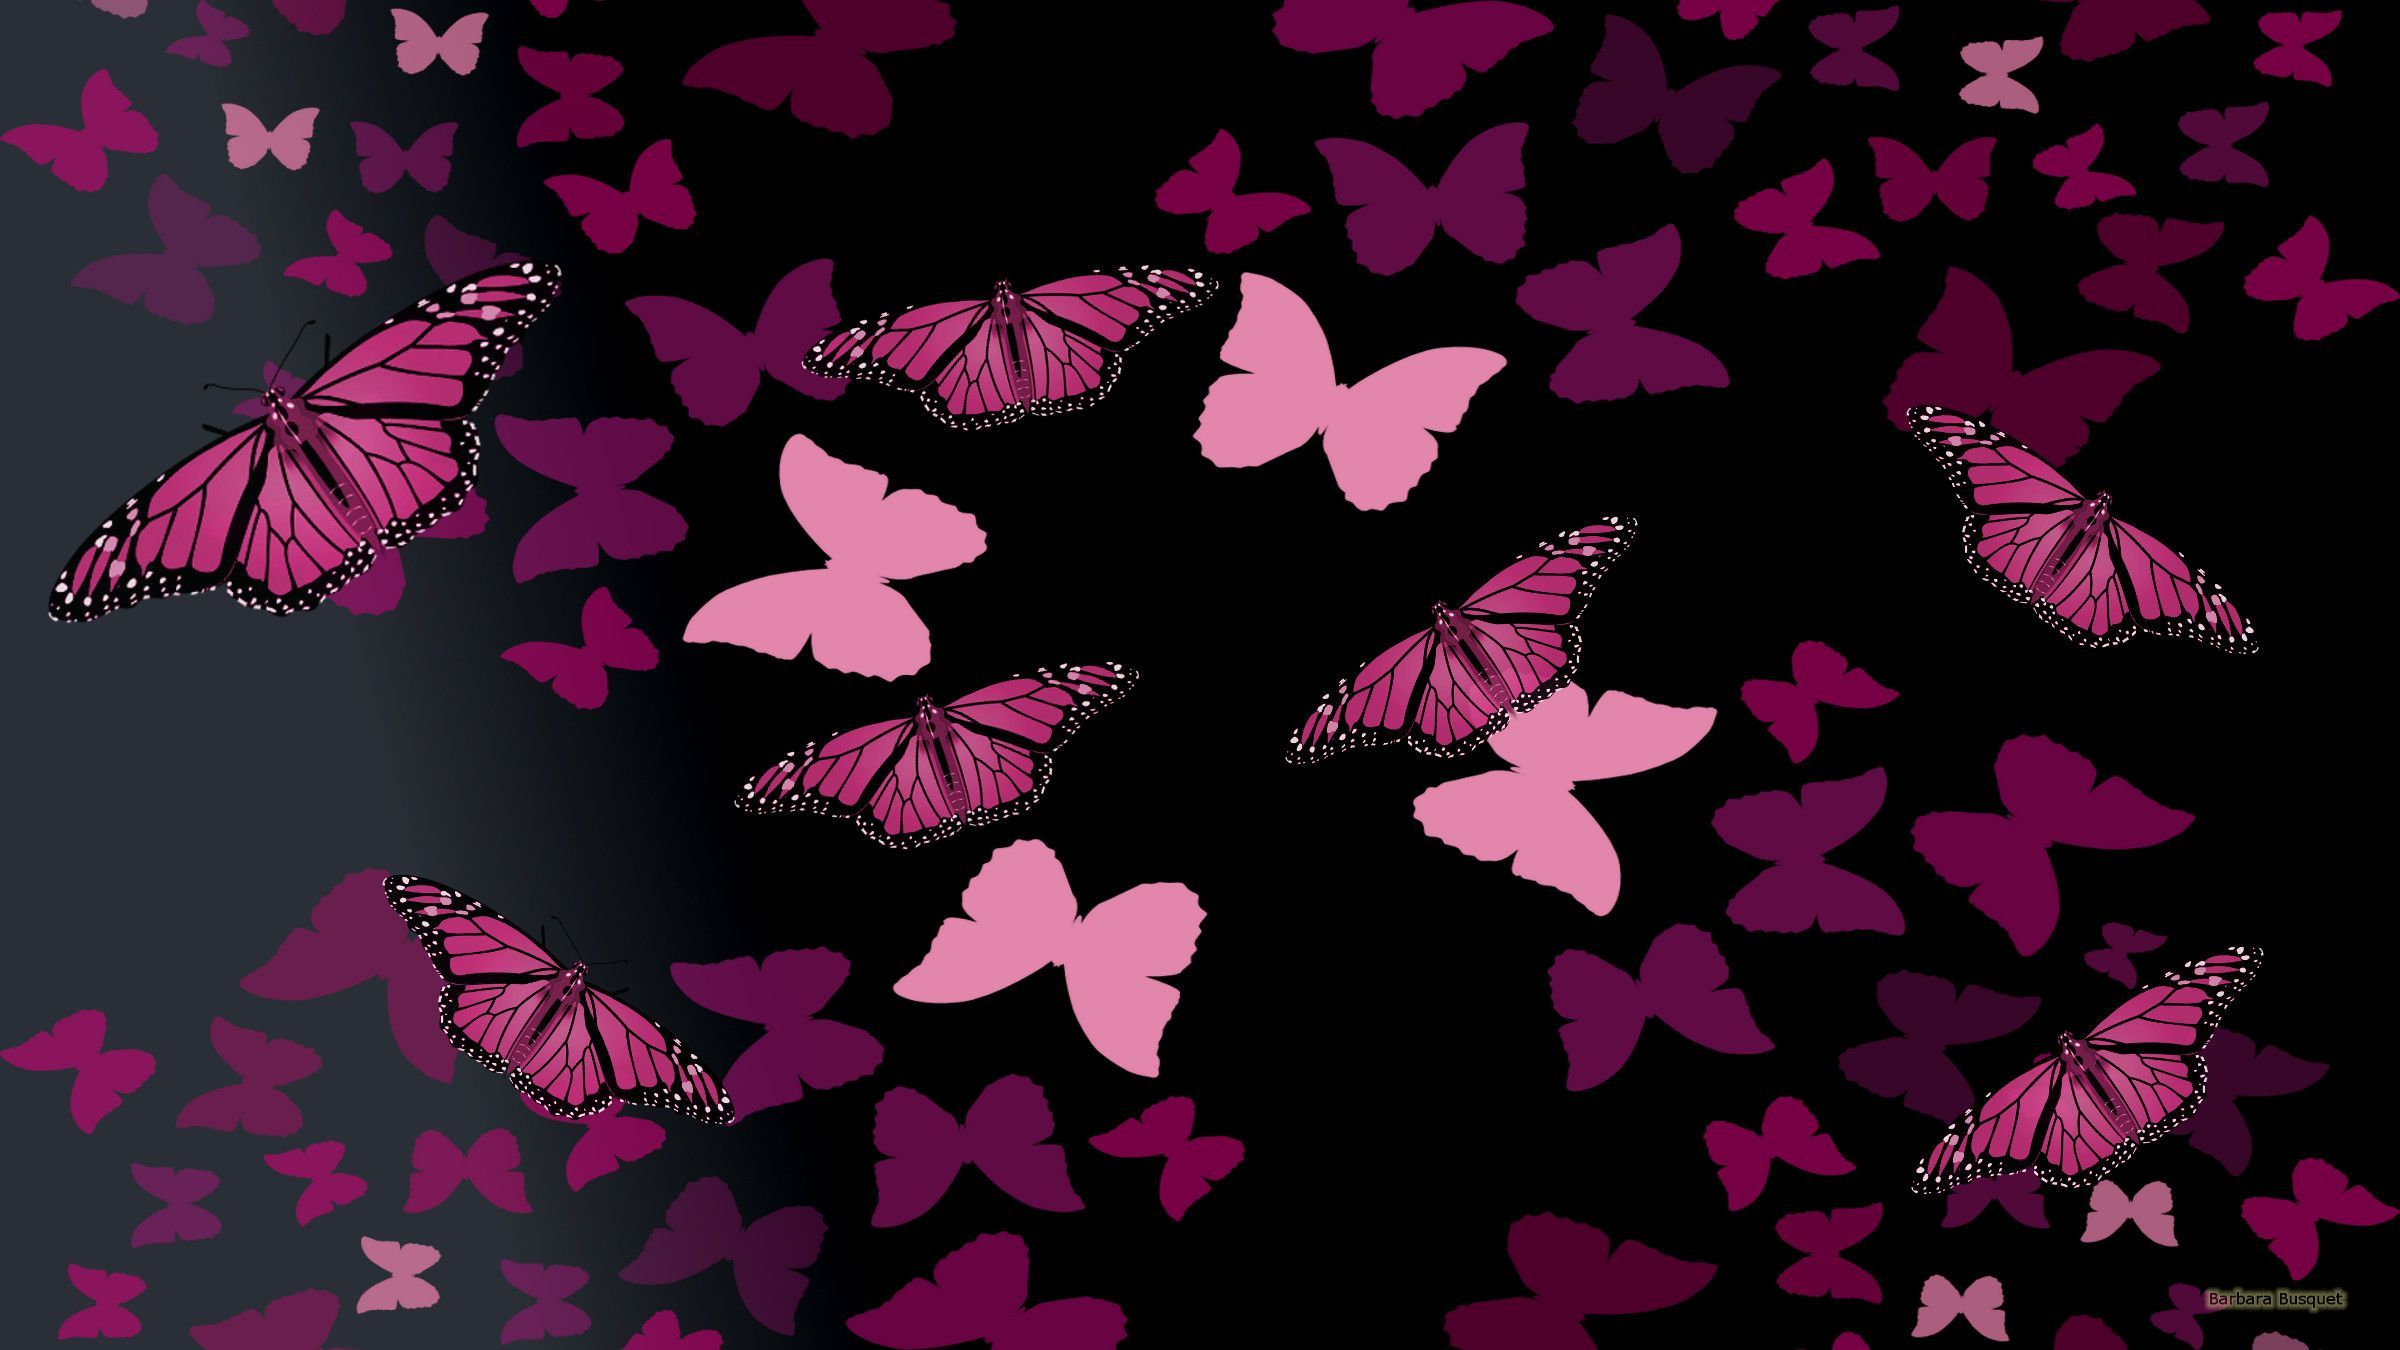 Black And Pink Butterfly Wallpapers Top Free Black And Pink Butterfly Backgrounds Wallpaperaccess